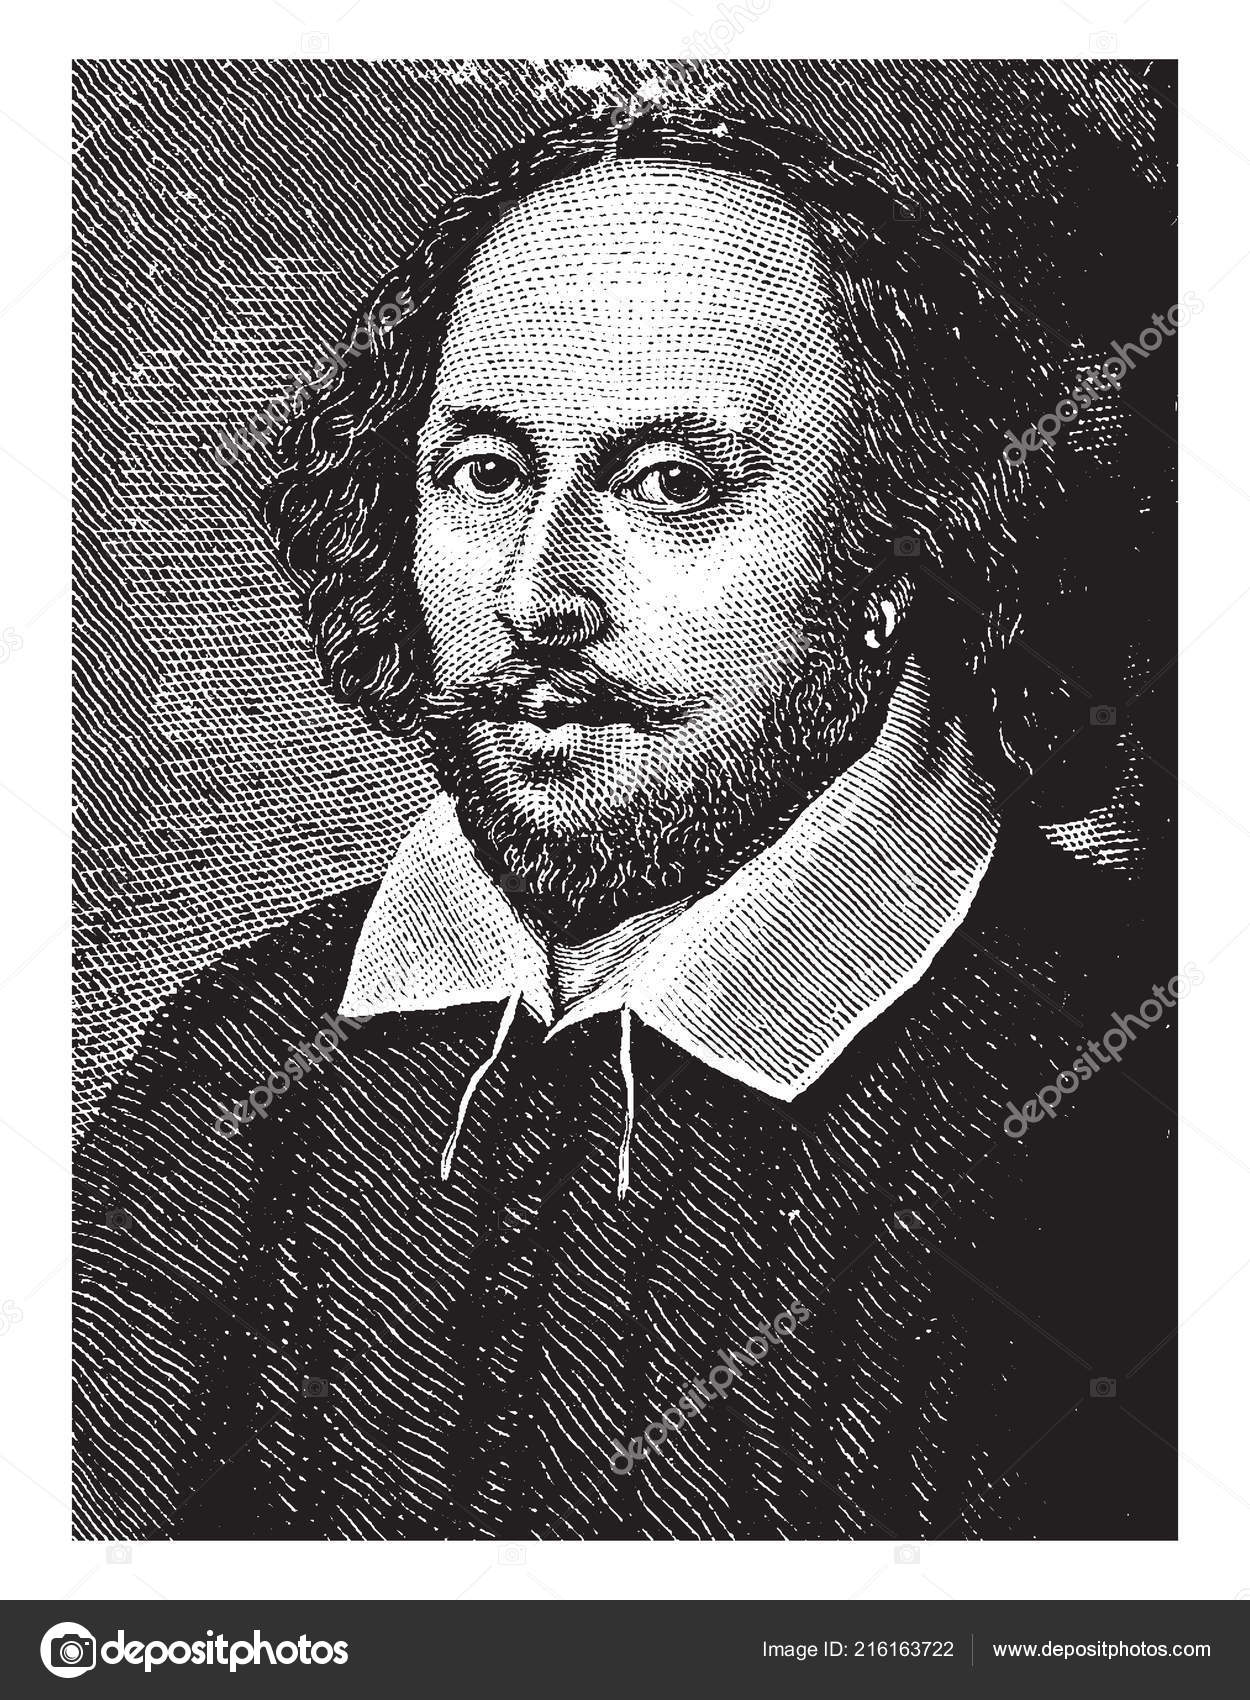 William Shakespeare, 1564-1616, he was an English poet, playwright, actor,  and the greatest writer in the English language, famous as the England's  national ...